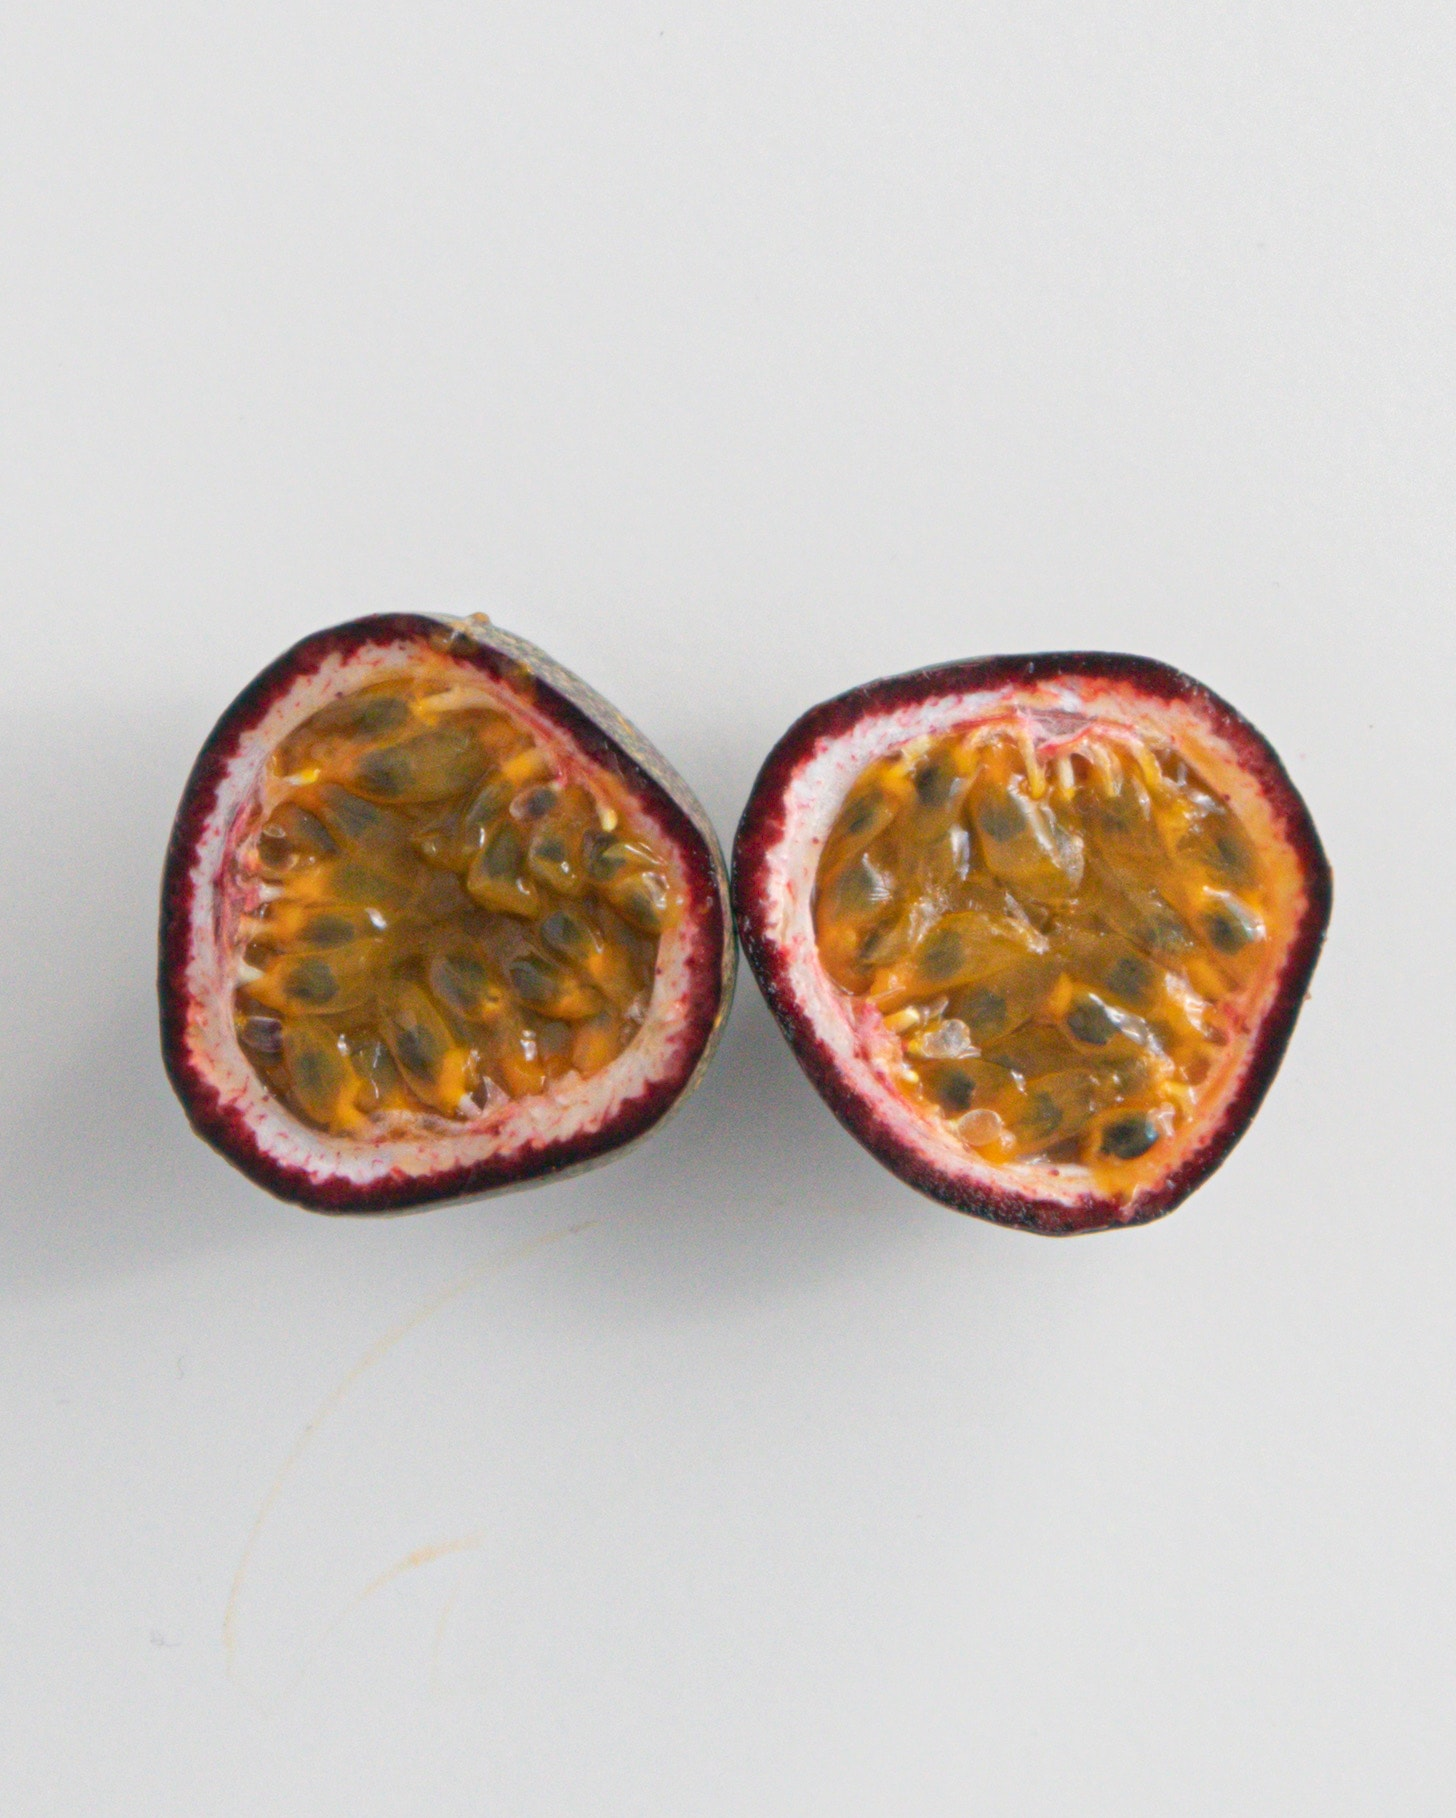 Passionfruit cut open on white background.